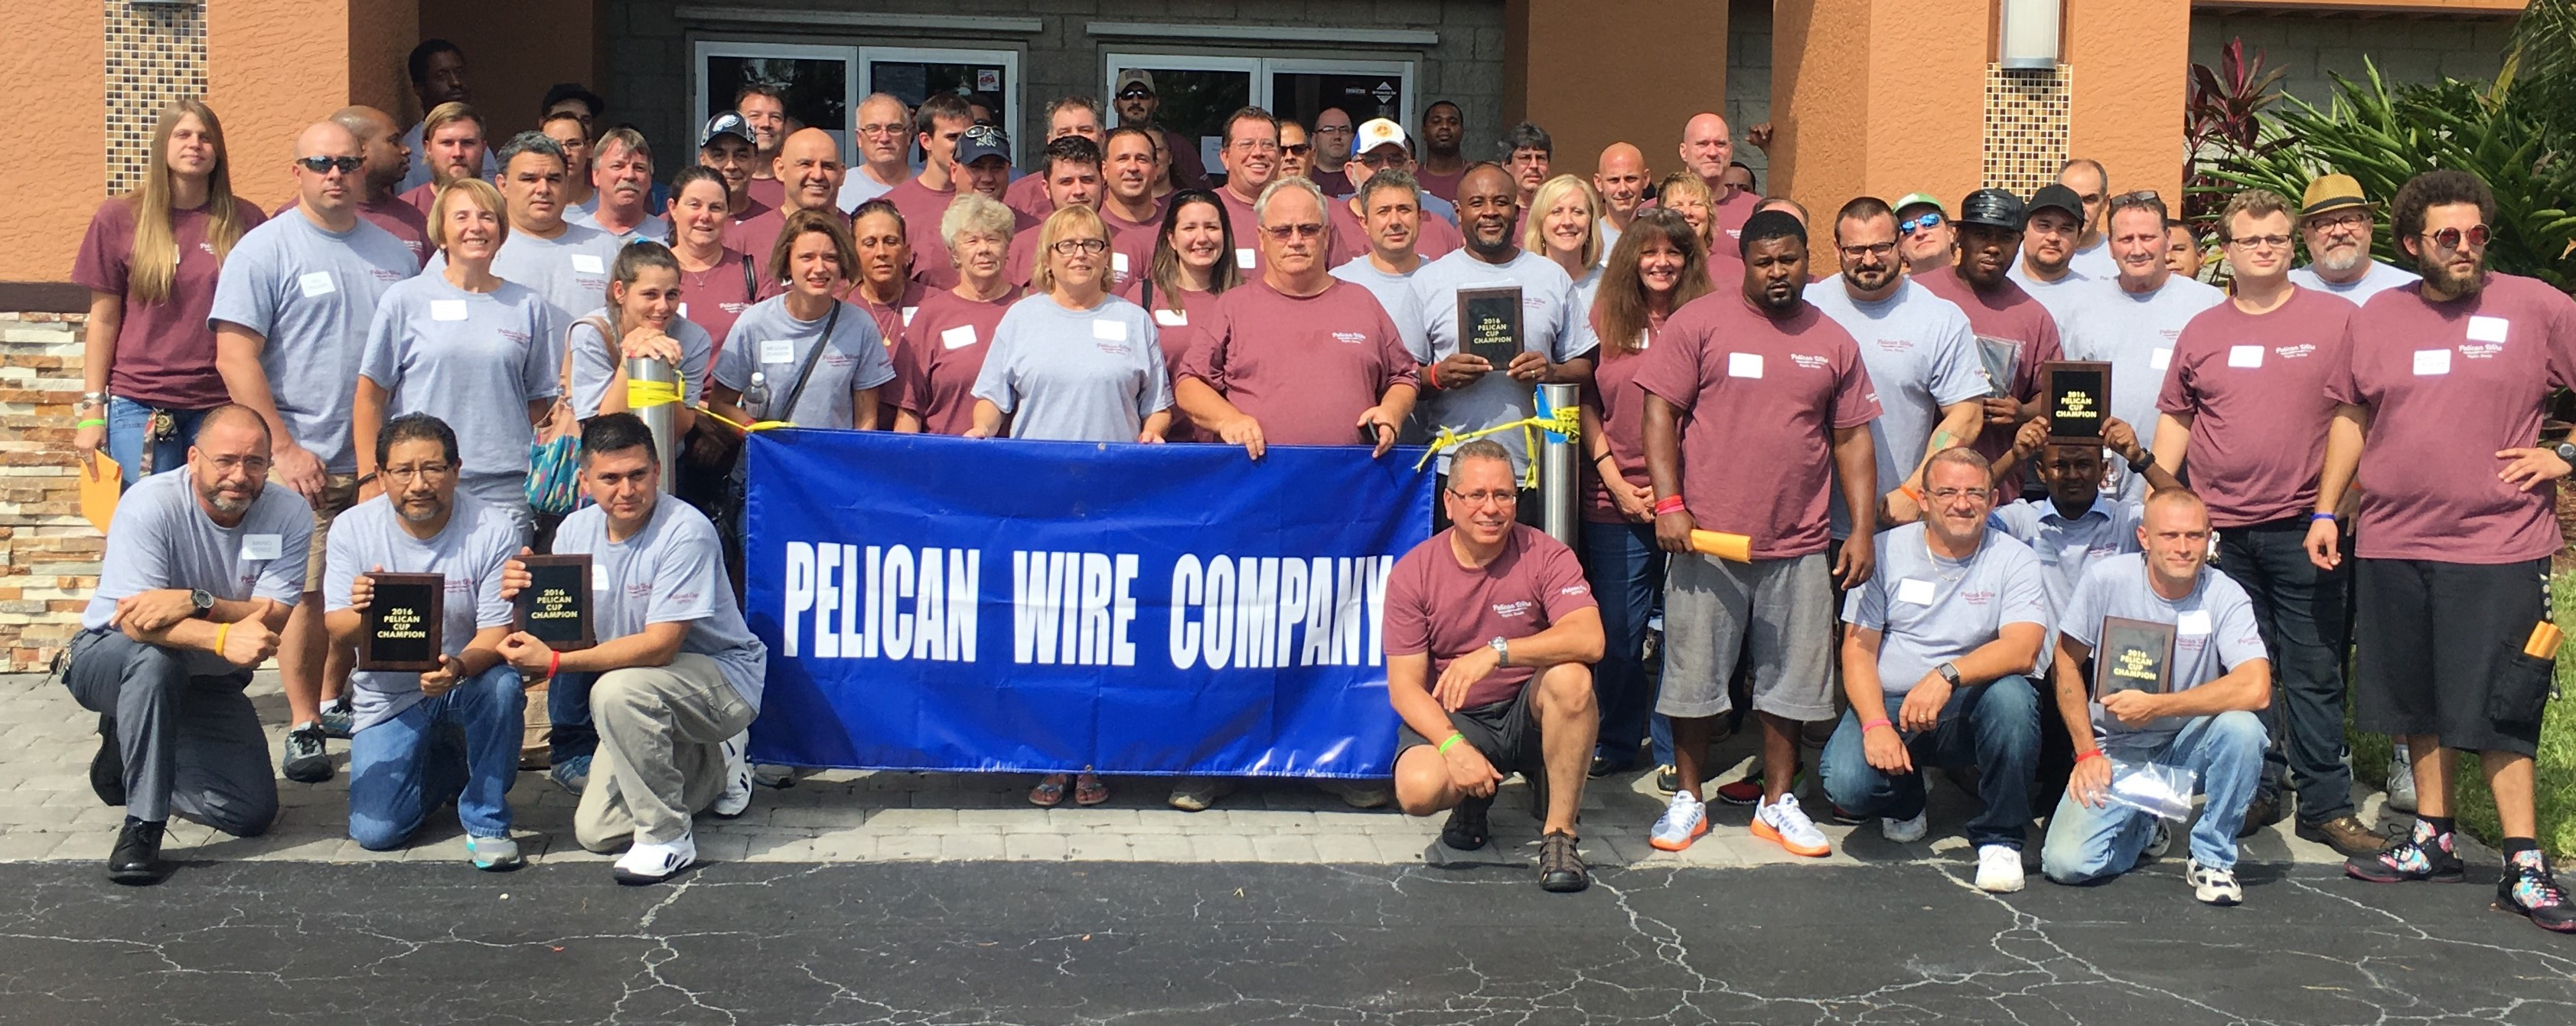 Career opportunities pelican wire company at pelican wire we are always looking for talented dedicated people to become employee owners help us grow while developing professionally publicscrutiny Choice Image